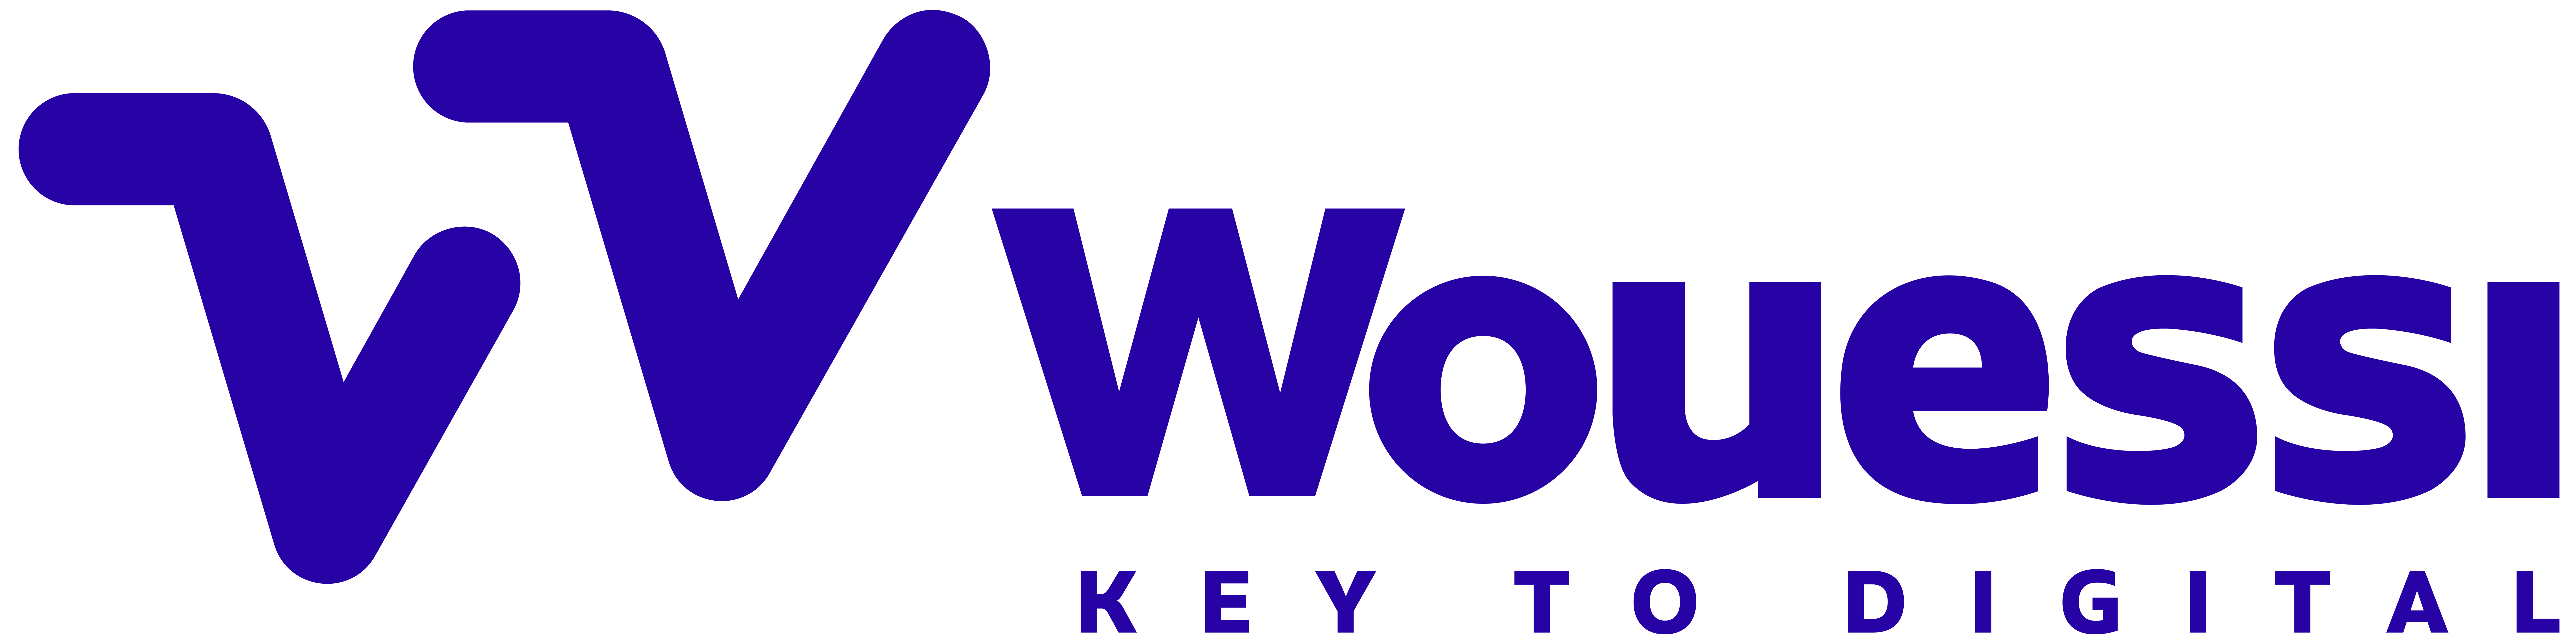 Wouessi_Logo mobile